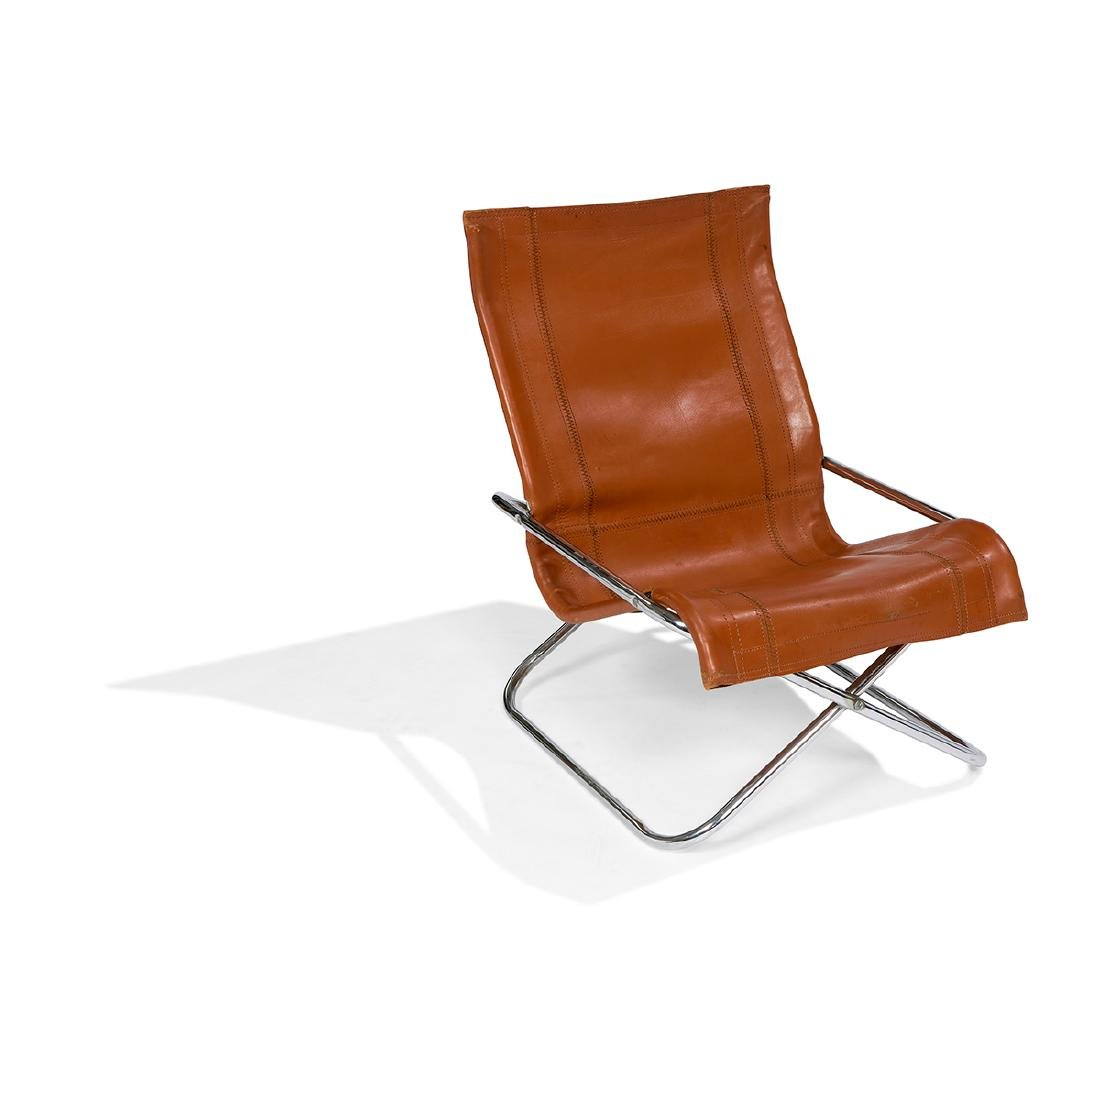 Takeshi Nii 'Ny' folding chair, leather seat